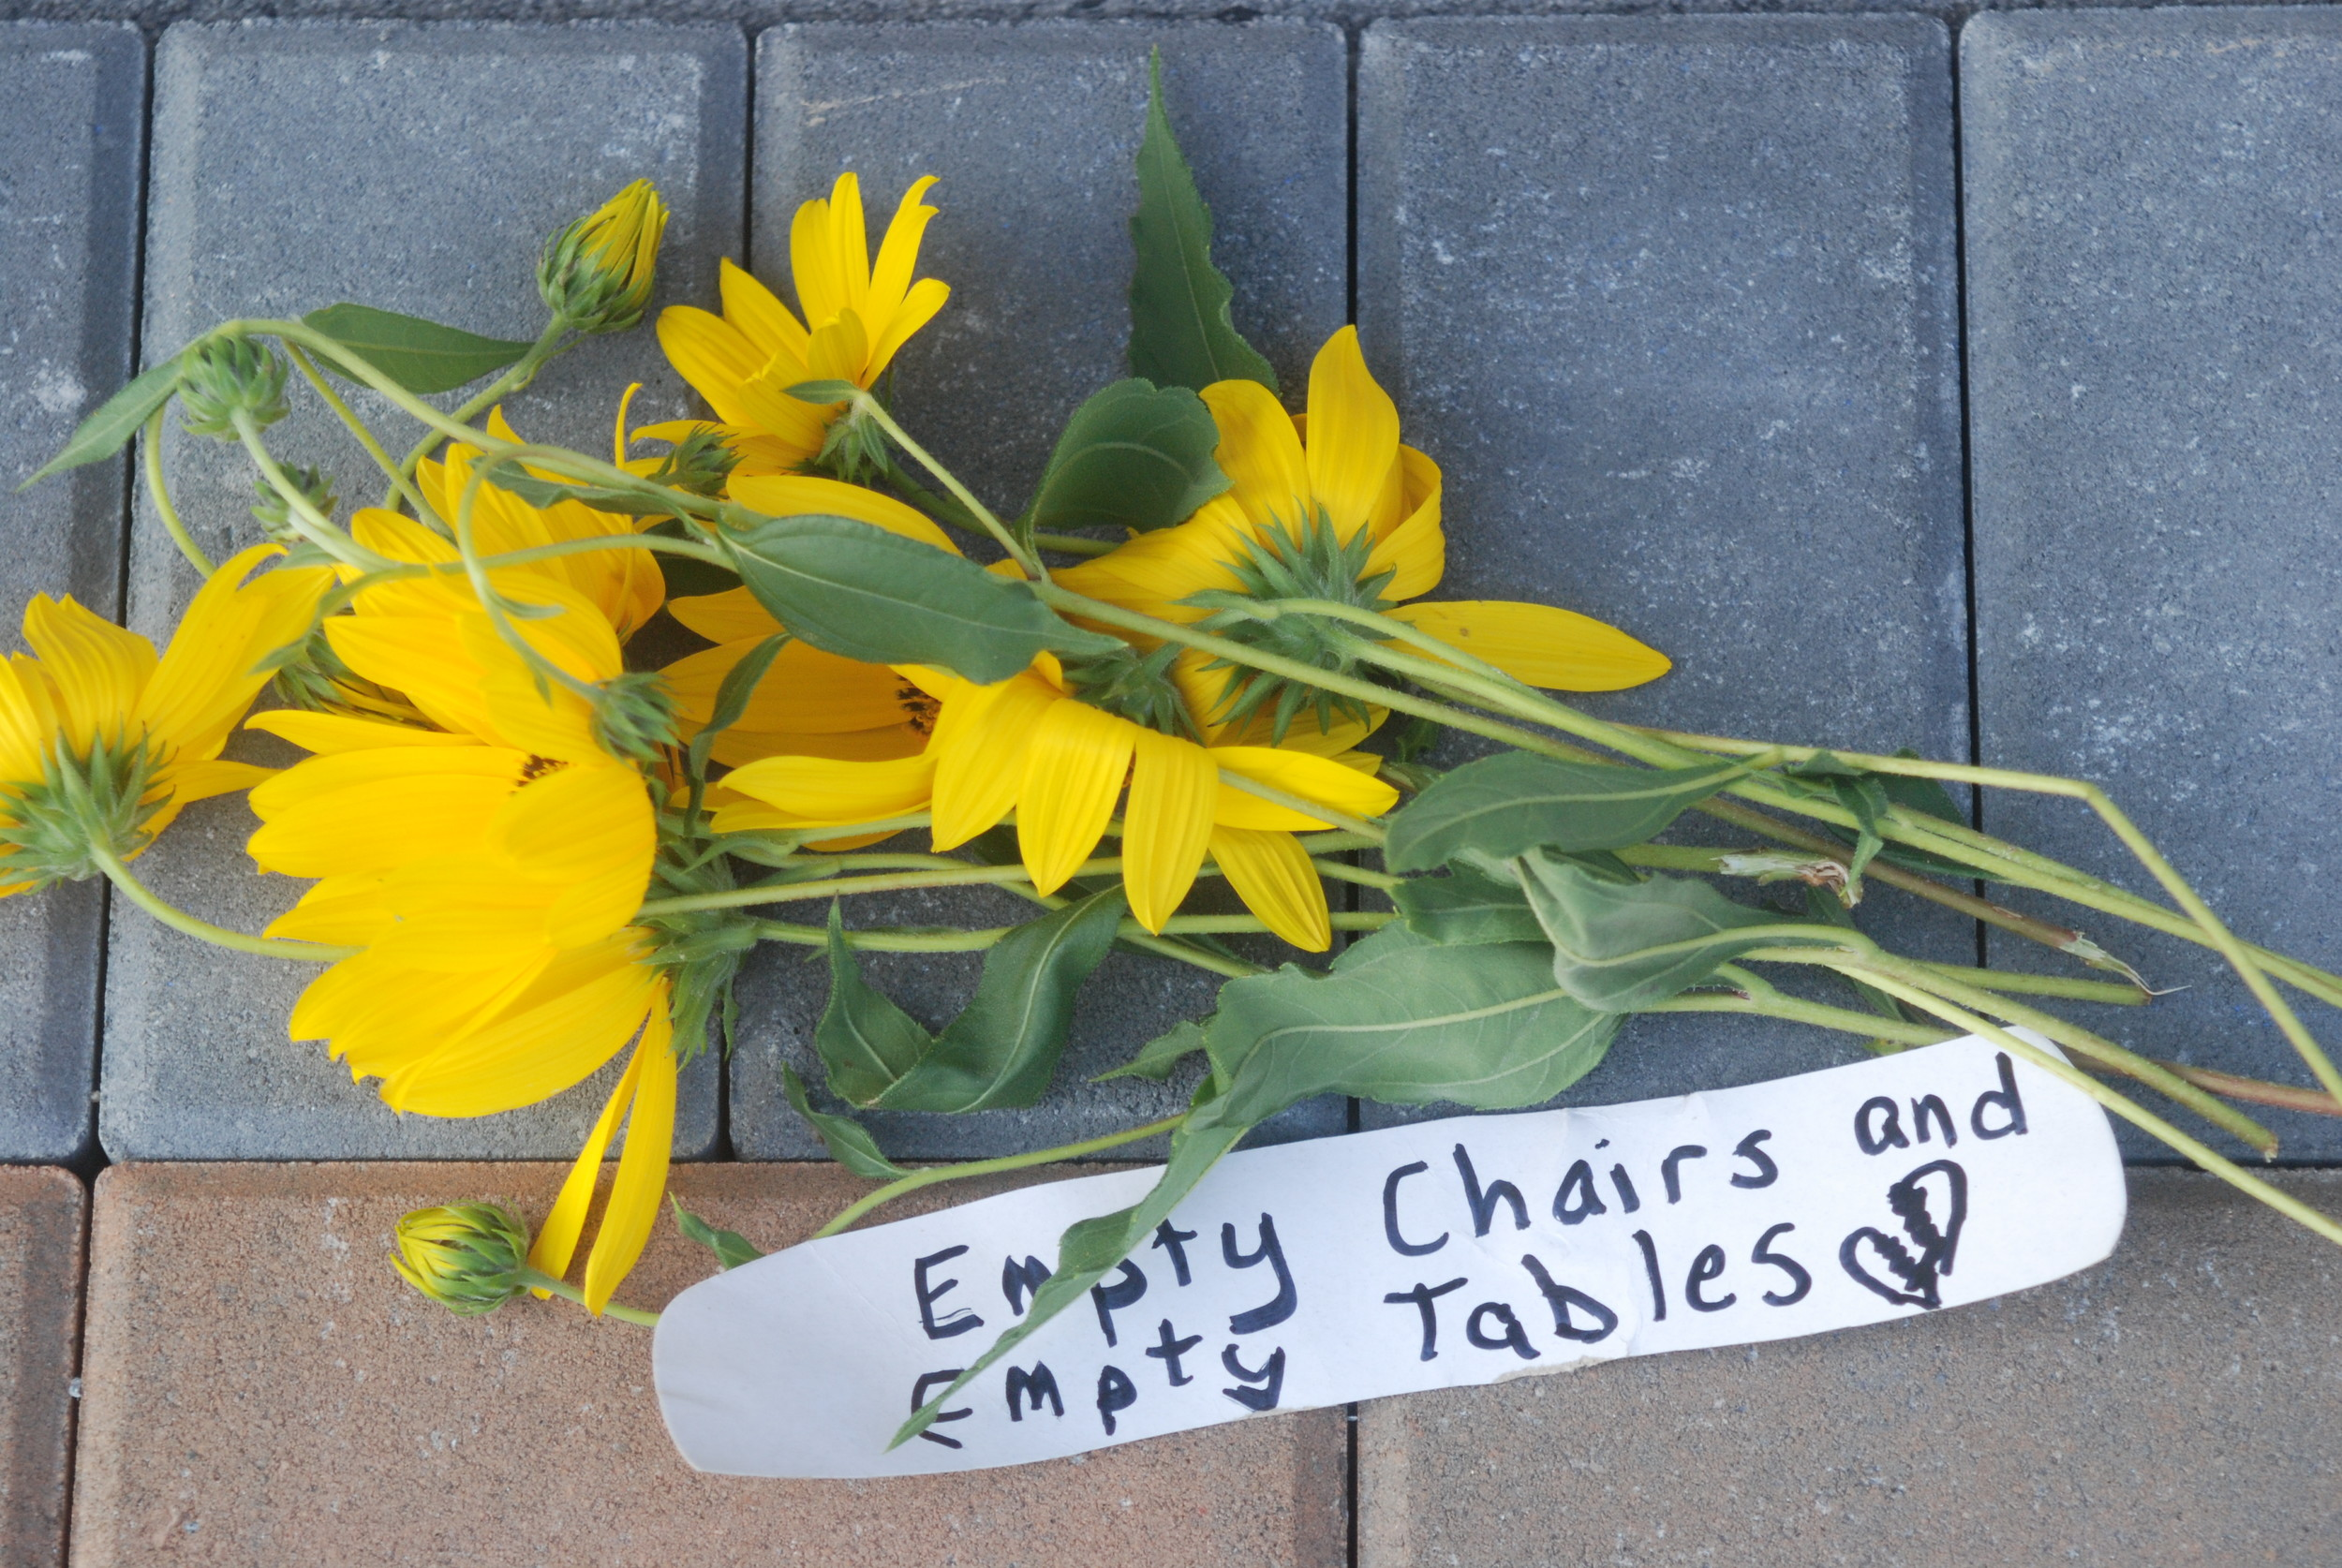 People left flowers with messages in front of the memorial.